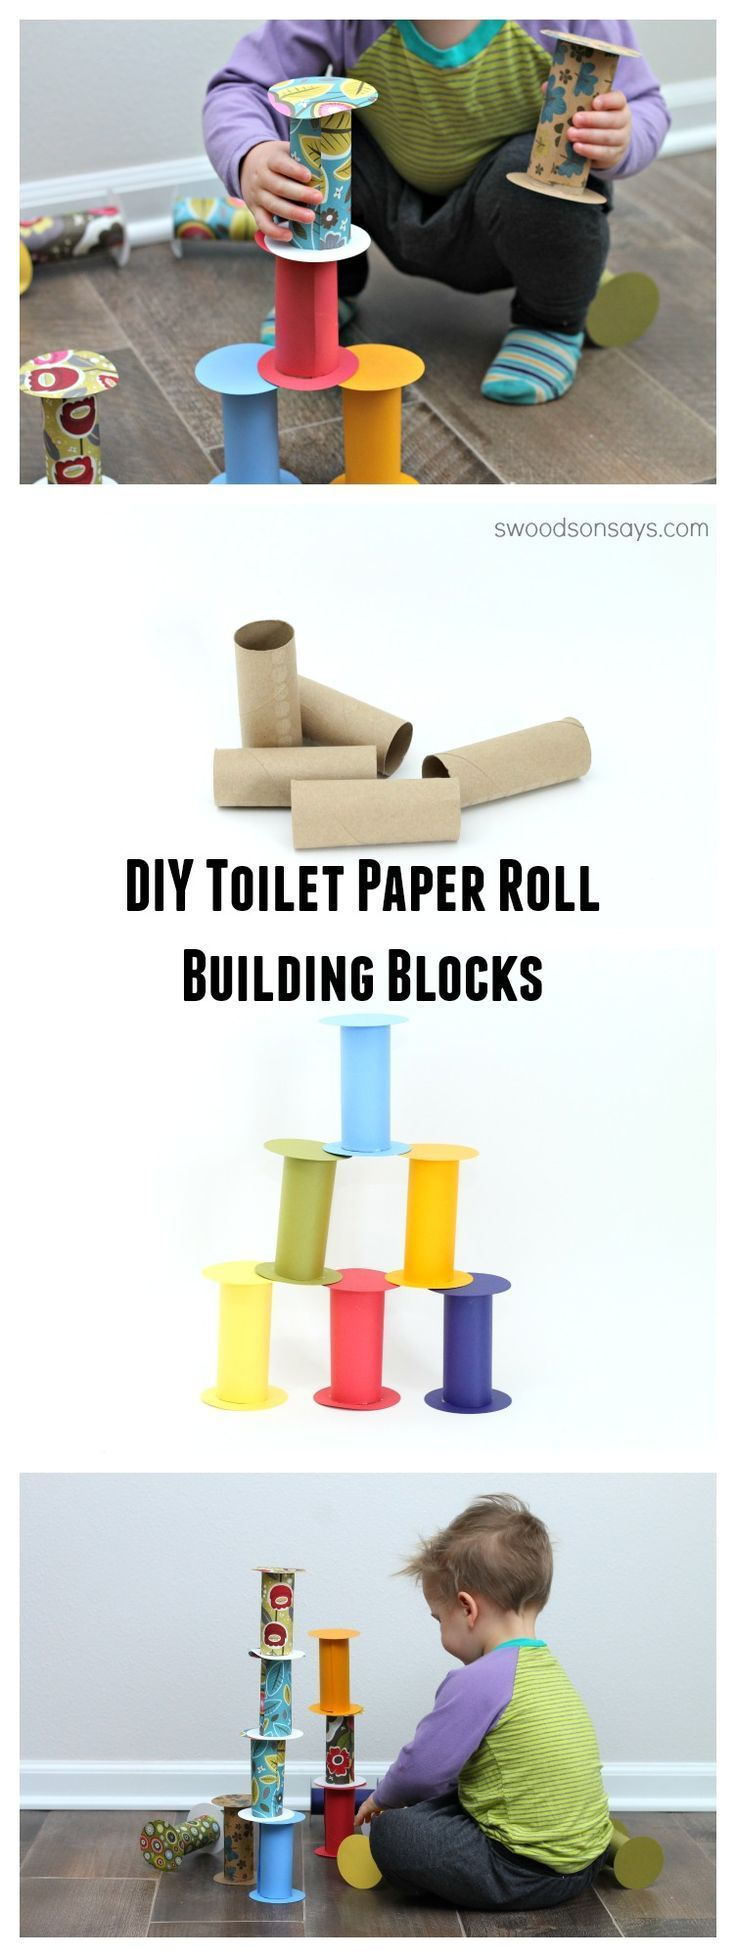 DIY Recycled Toilet Paper Roll Building Blocks - a quick, easy, free toy to keep you from going crazy inside this winter. Recycled toddler toys are the best!